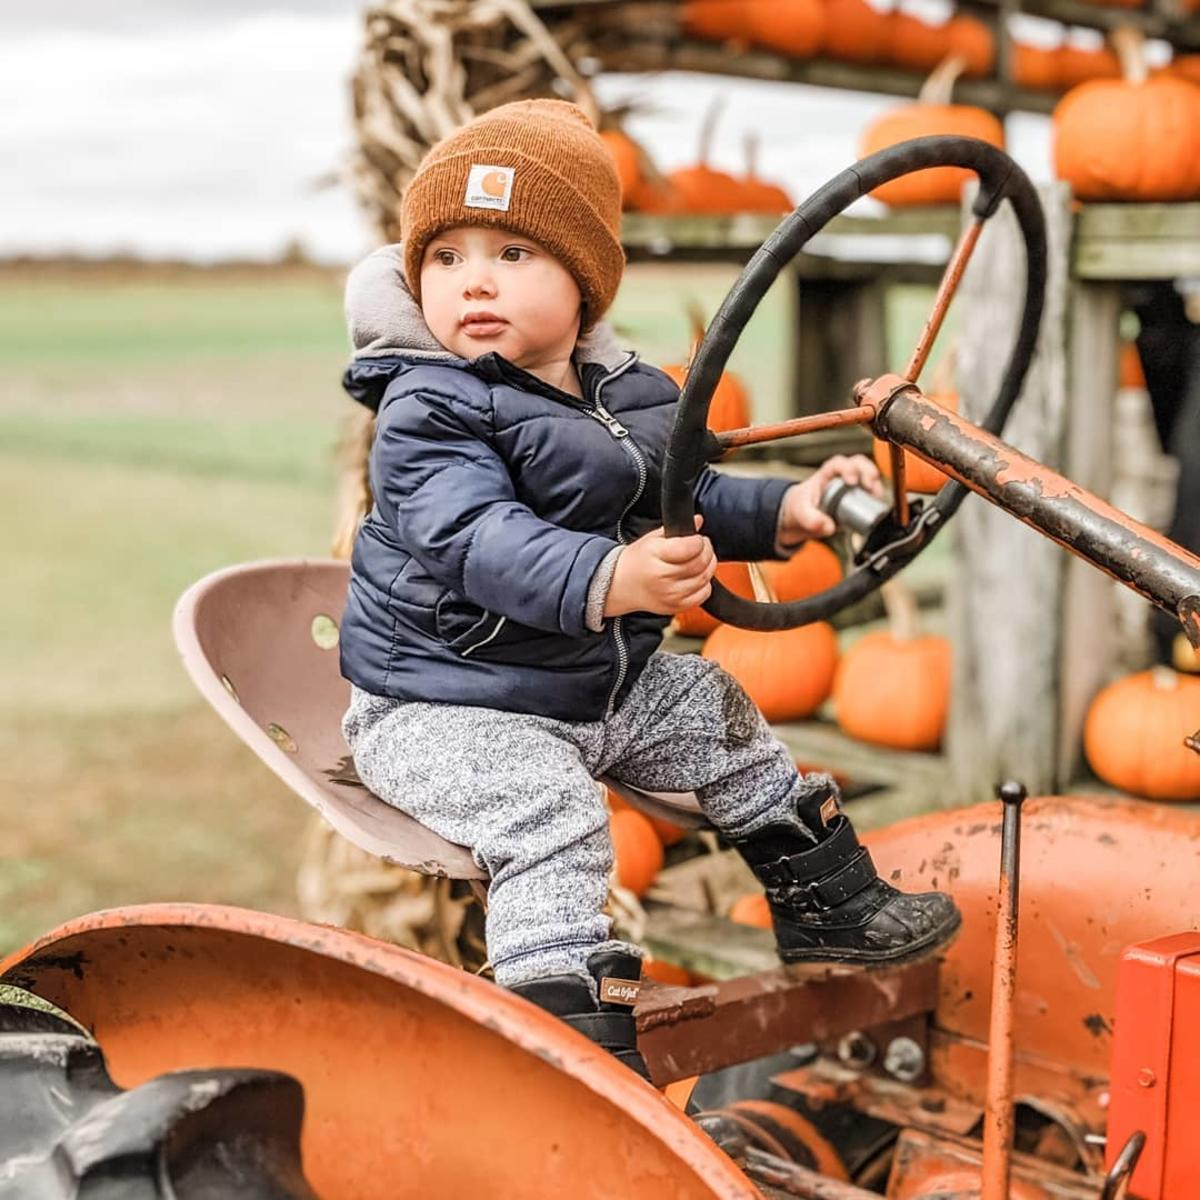 Little boy sitting on an antique tractor at Johnson's Giant Pumpkins in the fall